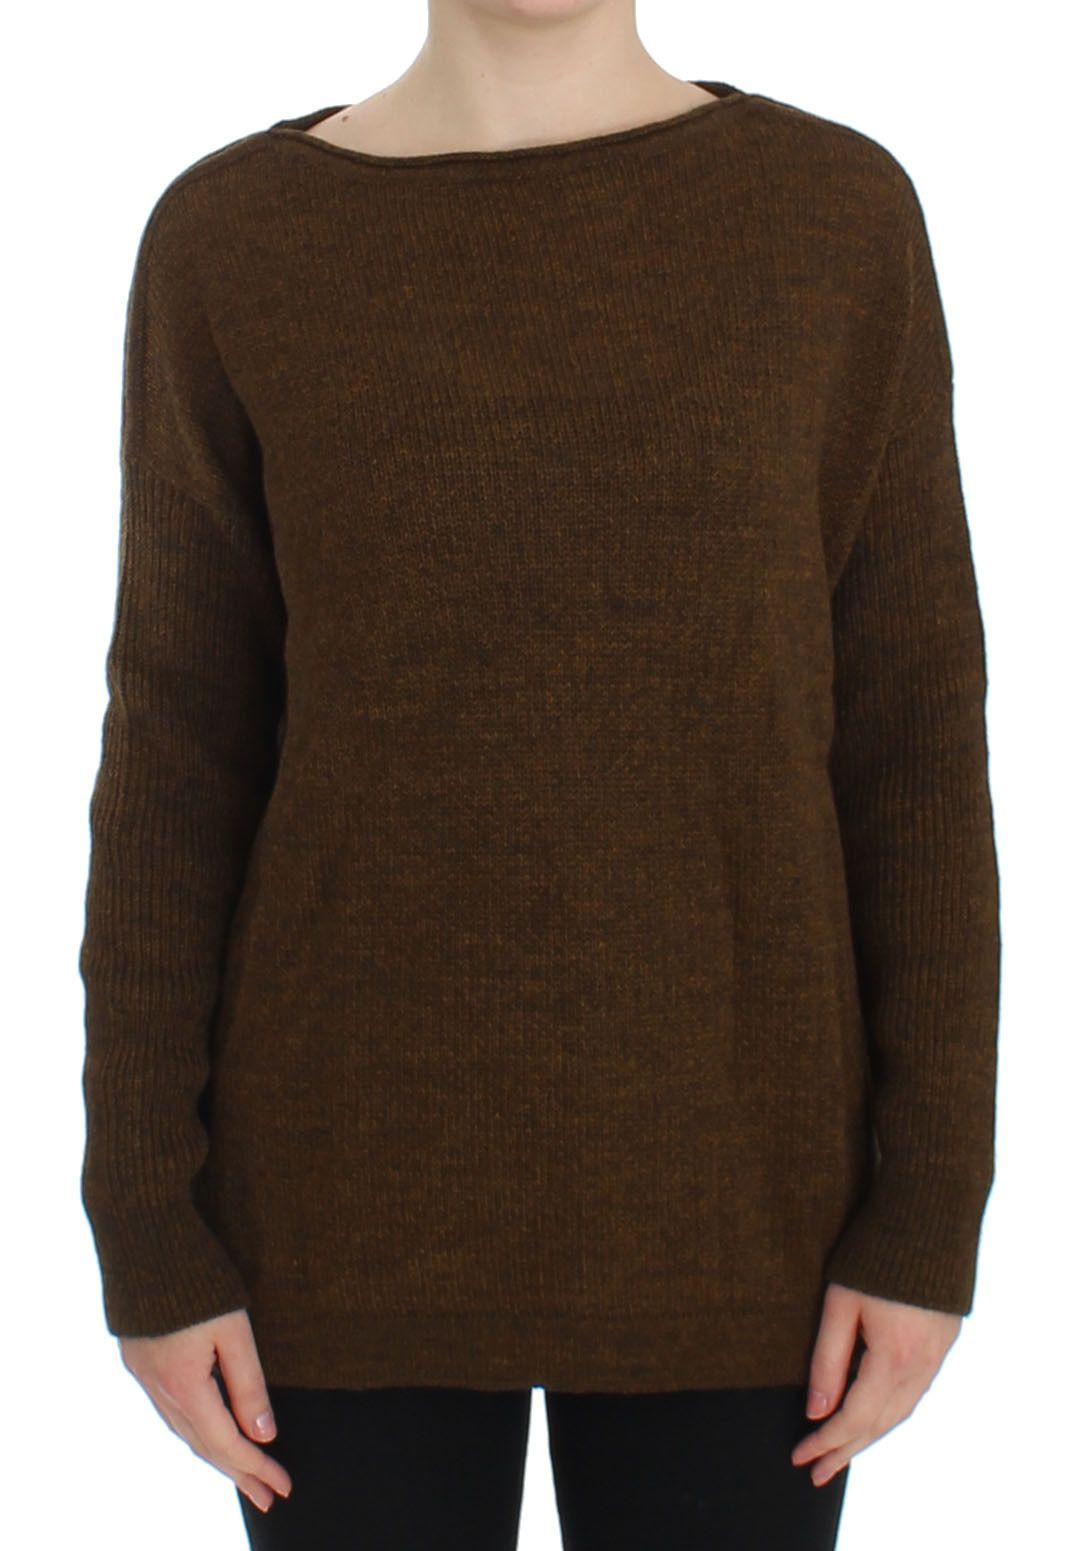 Dolce & Gabbana Women's Knitted Pullover Sweater Green SIG13342 - IT40|S